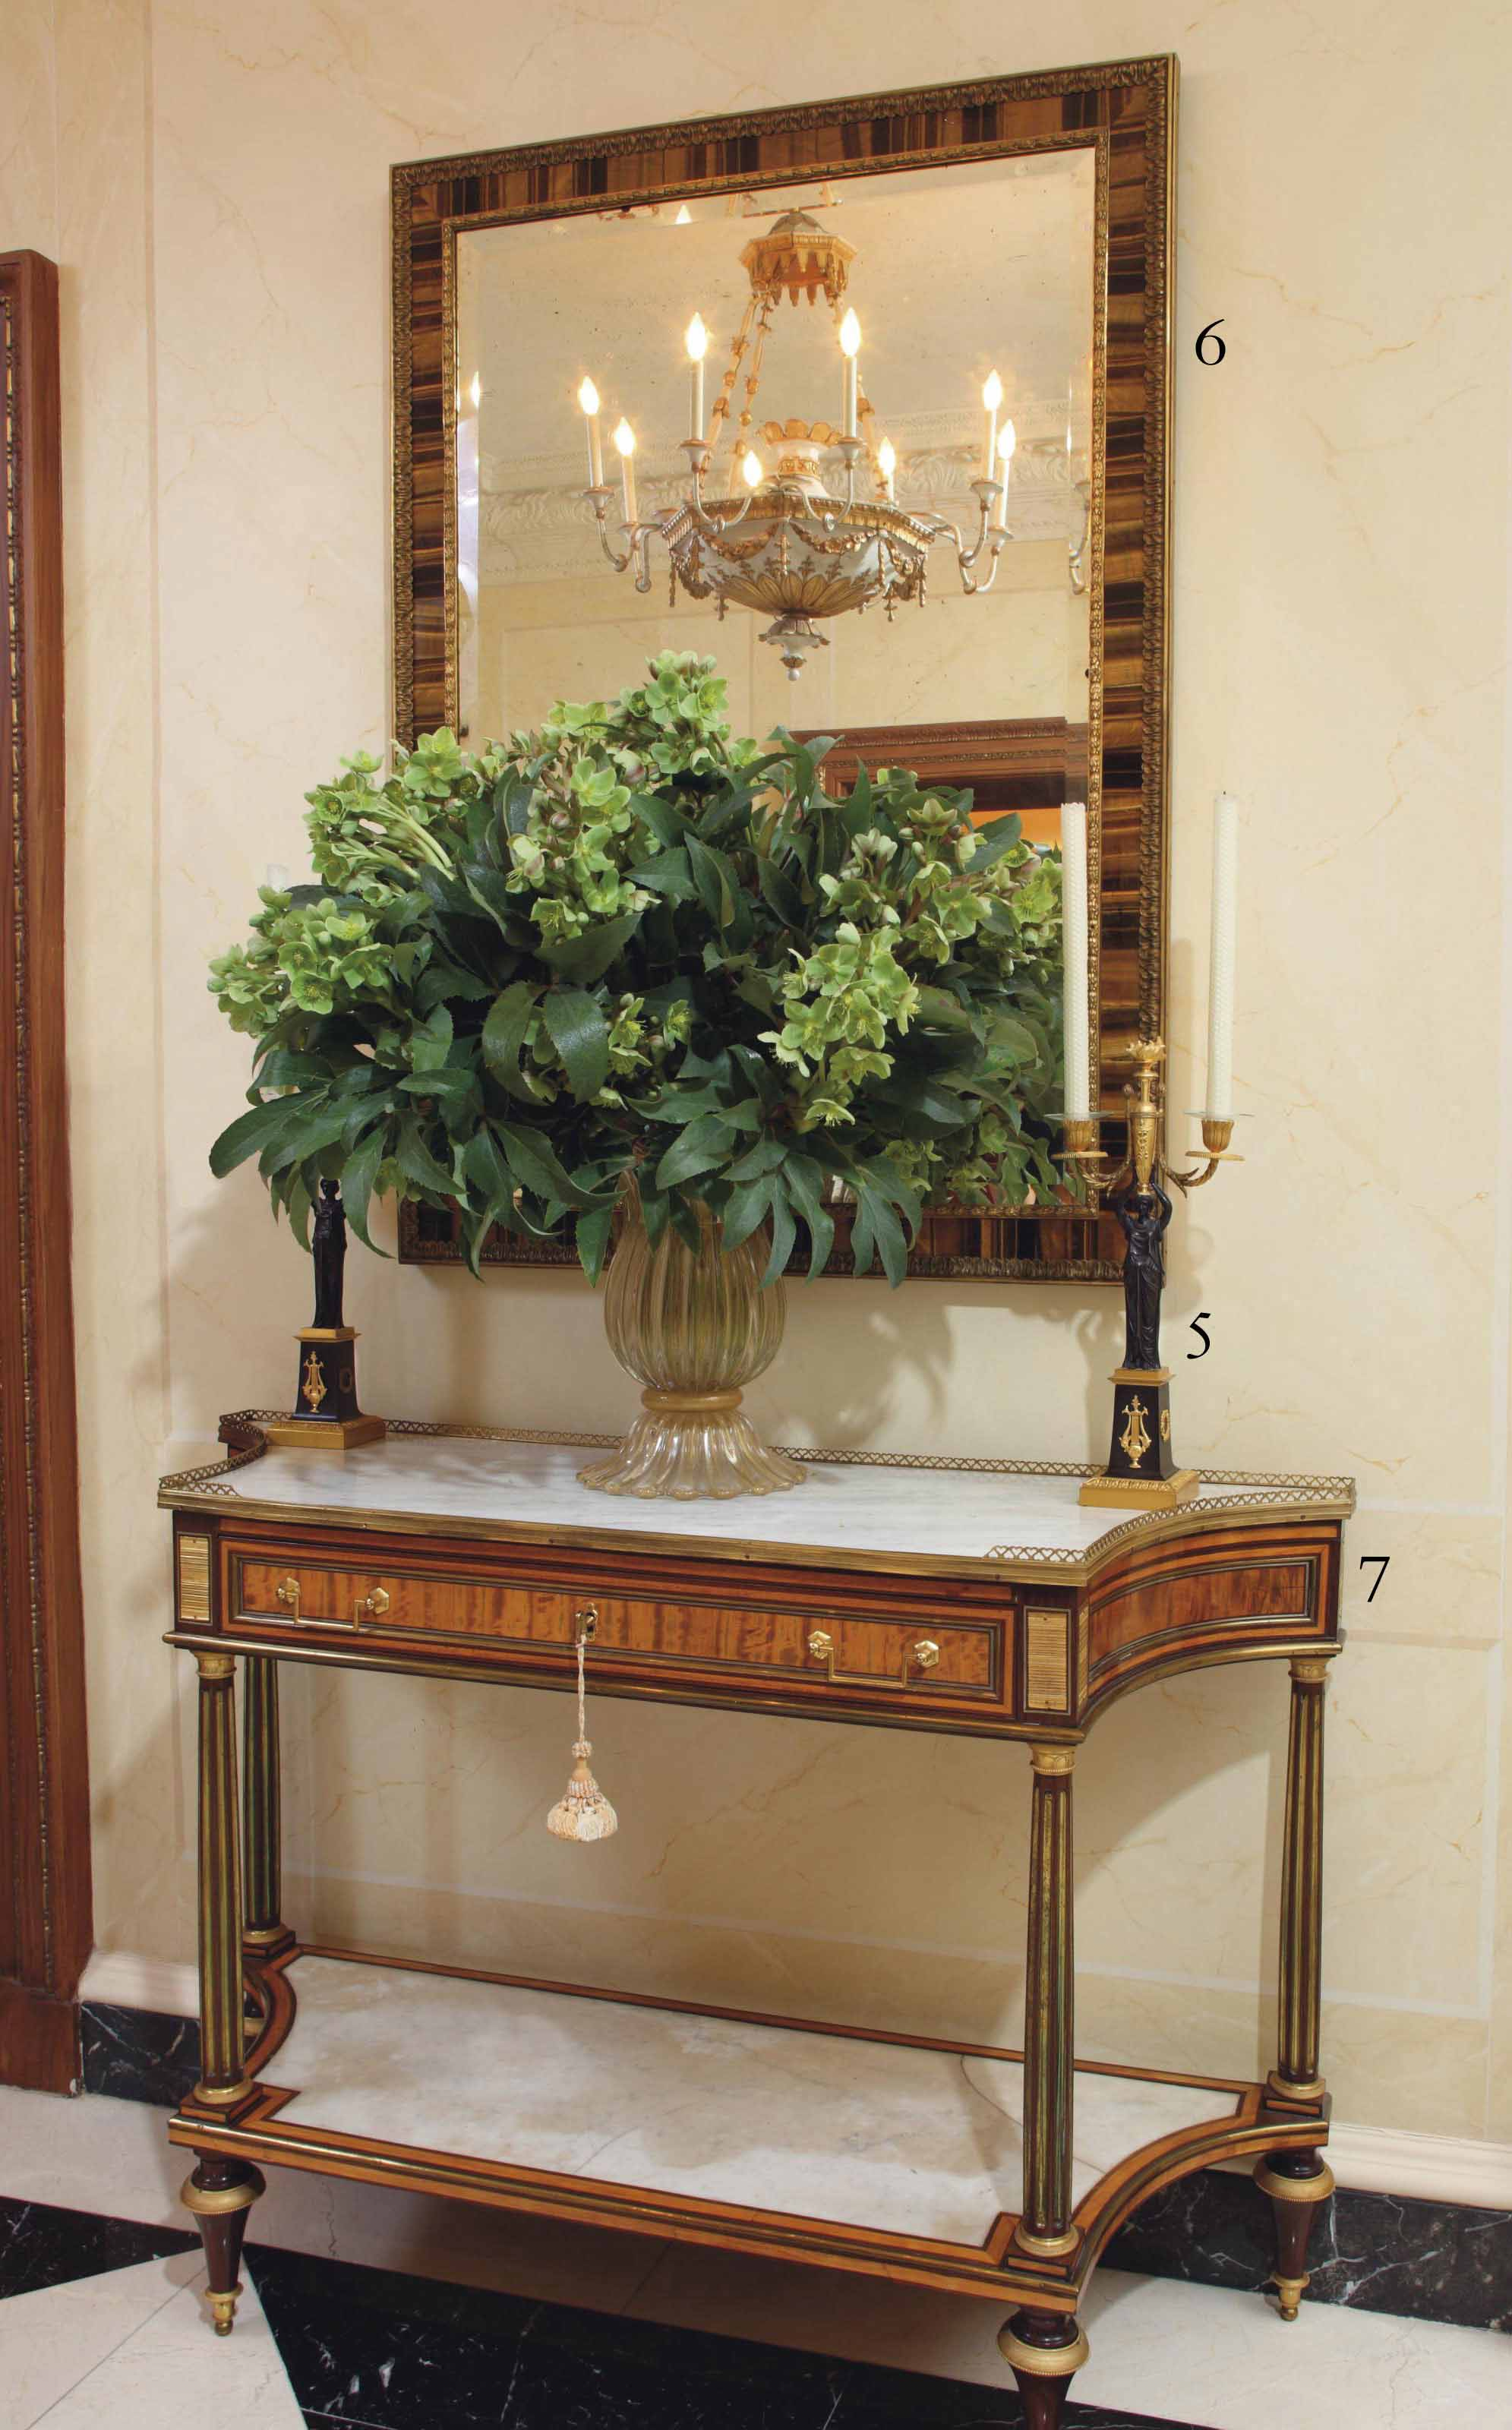 A LATE LOUIS XVI ORMOLU-MOUNTED AND PEWTER-INLAID CITRONNIER AND AMARANTH CONSOLE DESSERTE